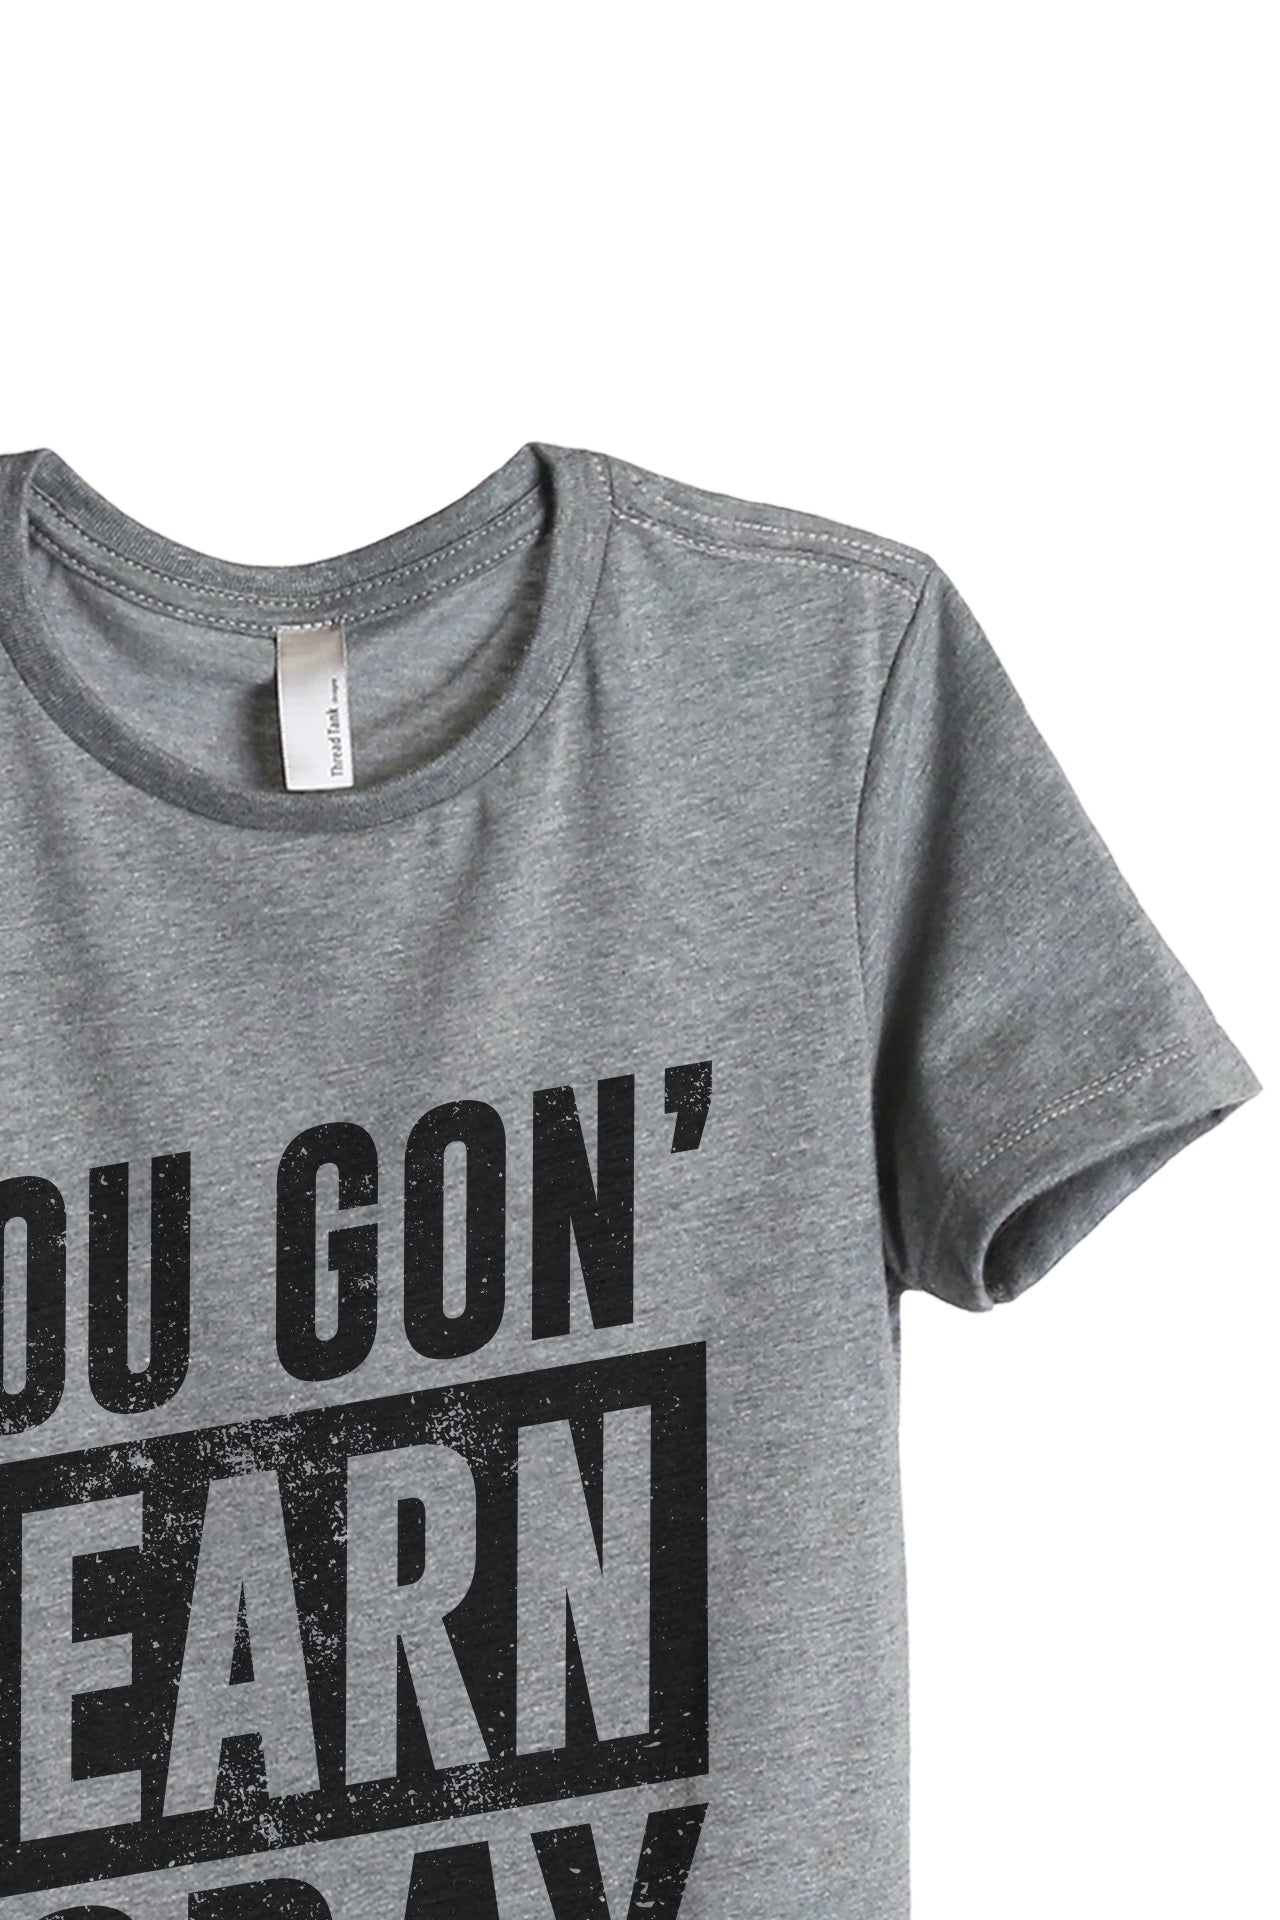 You Gon' Learn Today Women's Relaxed Crewneck T-Shirt Top Tee Heather Grey